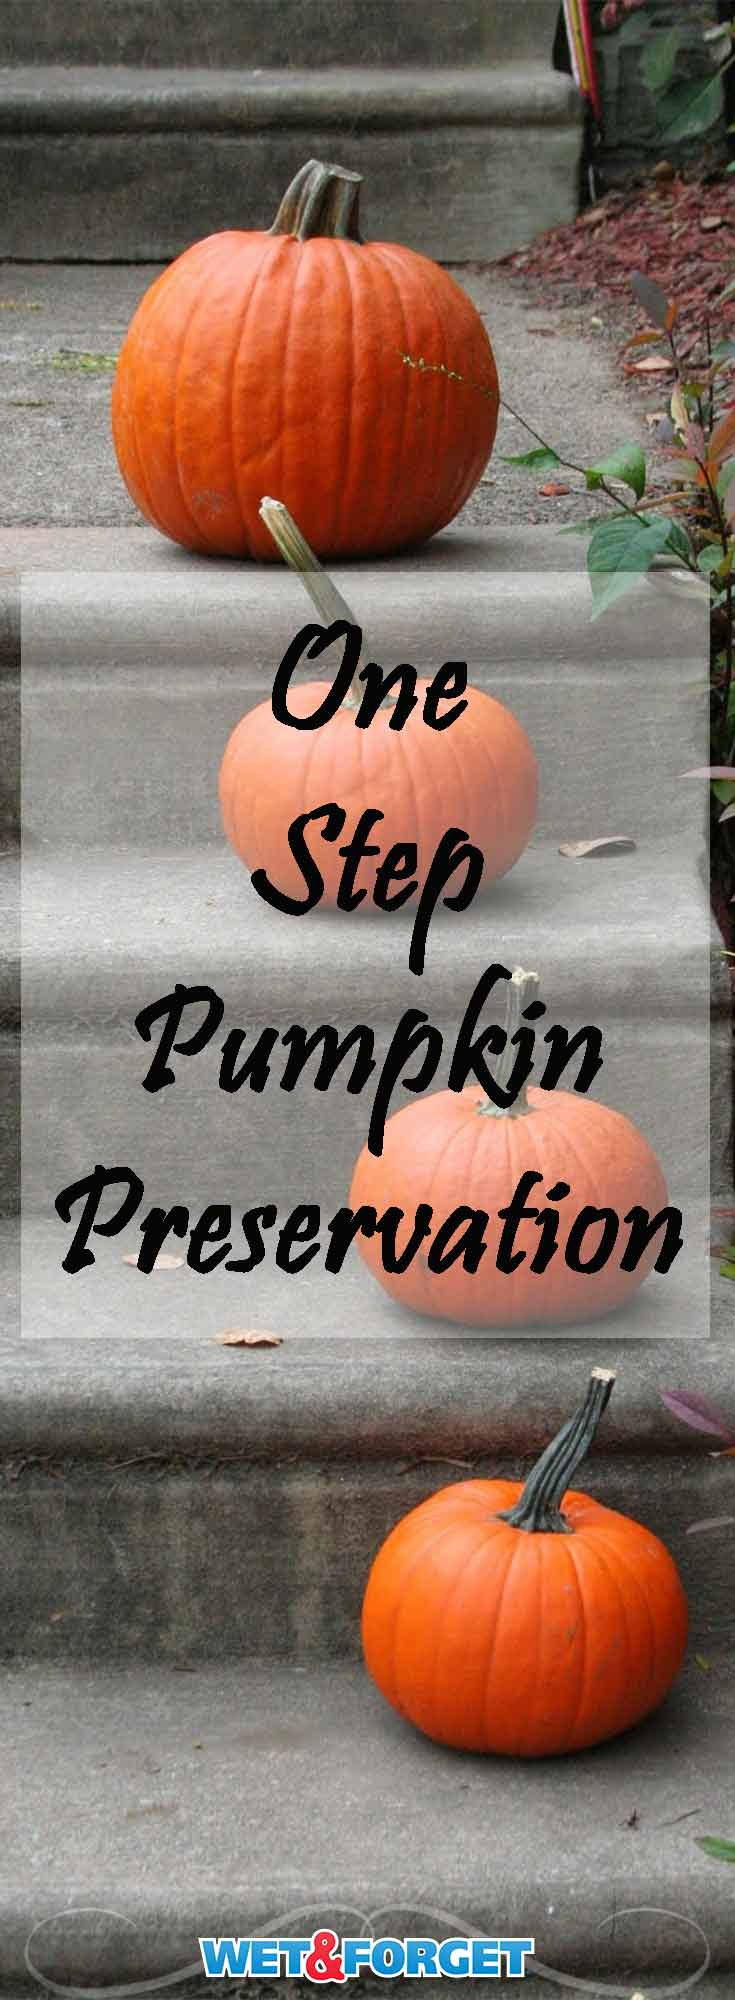 Learn how to preserve your pumpkins for up to 1 month with this simple one step process!